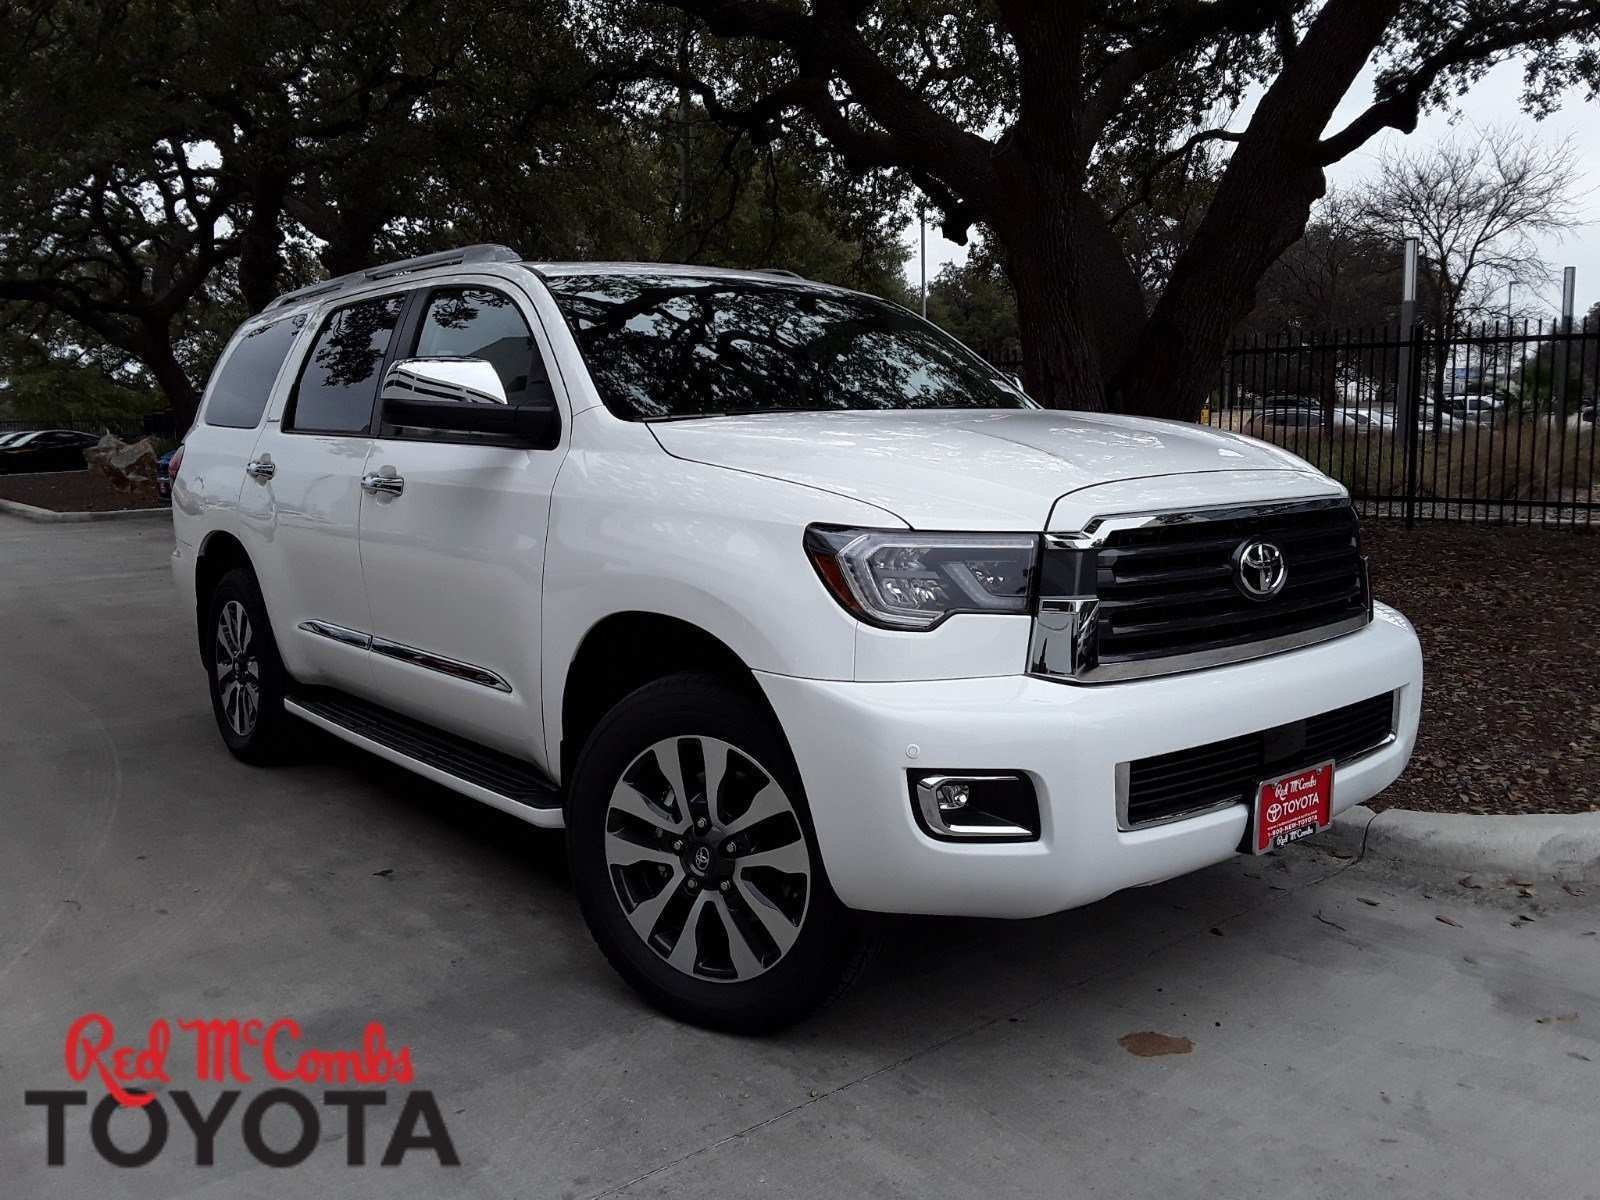 82 The Best 2019 Toyota Sequoia Ratings